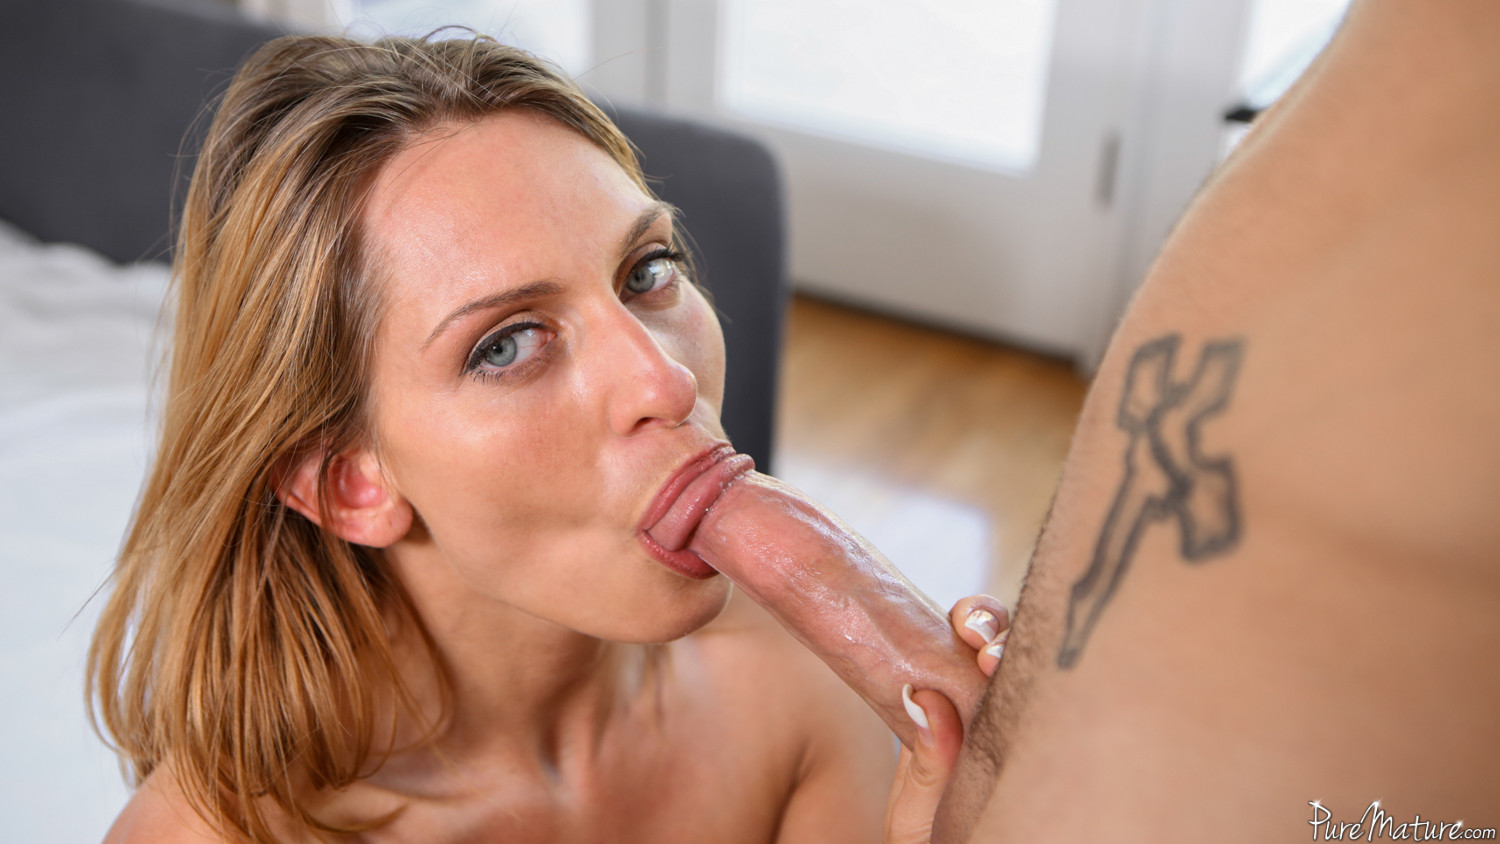 Satisfy your milf fetish with Pure Mature!